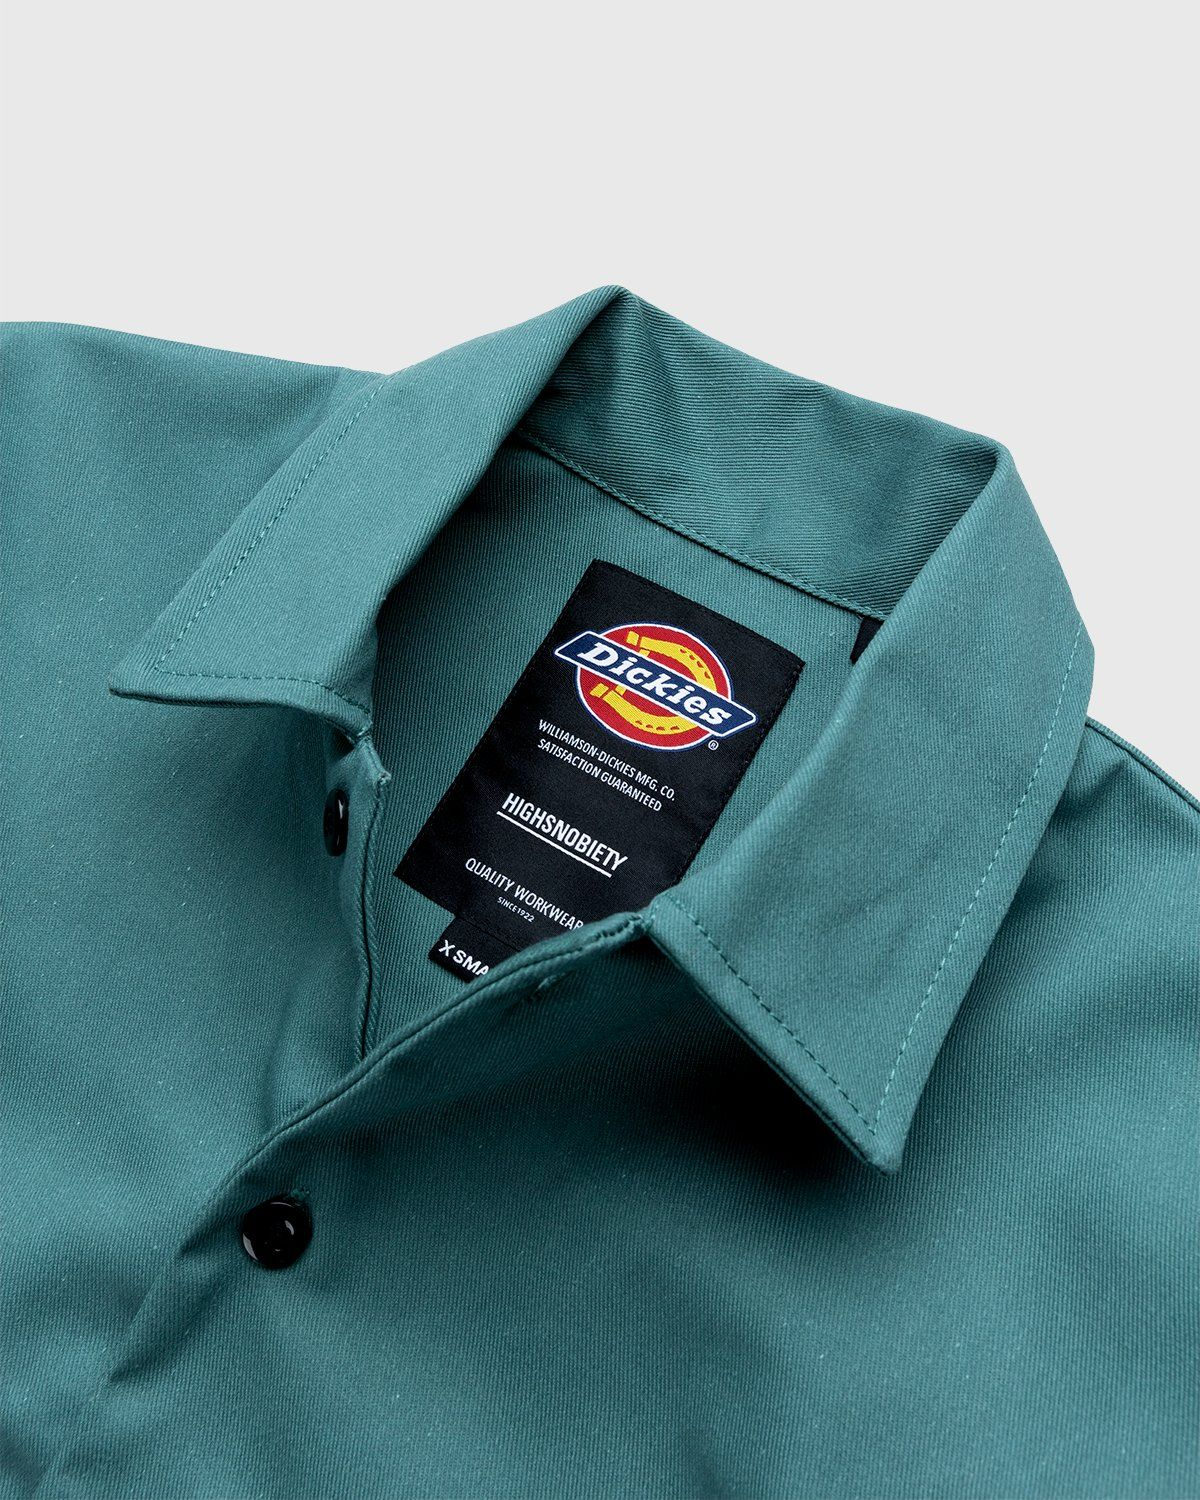 Highsnobiety x Dickies – Service Shirt Lincoln Green - Image 3